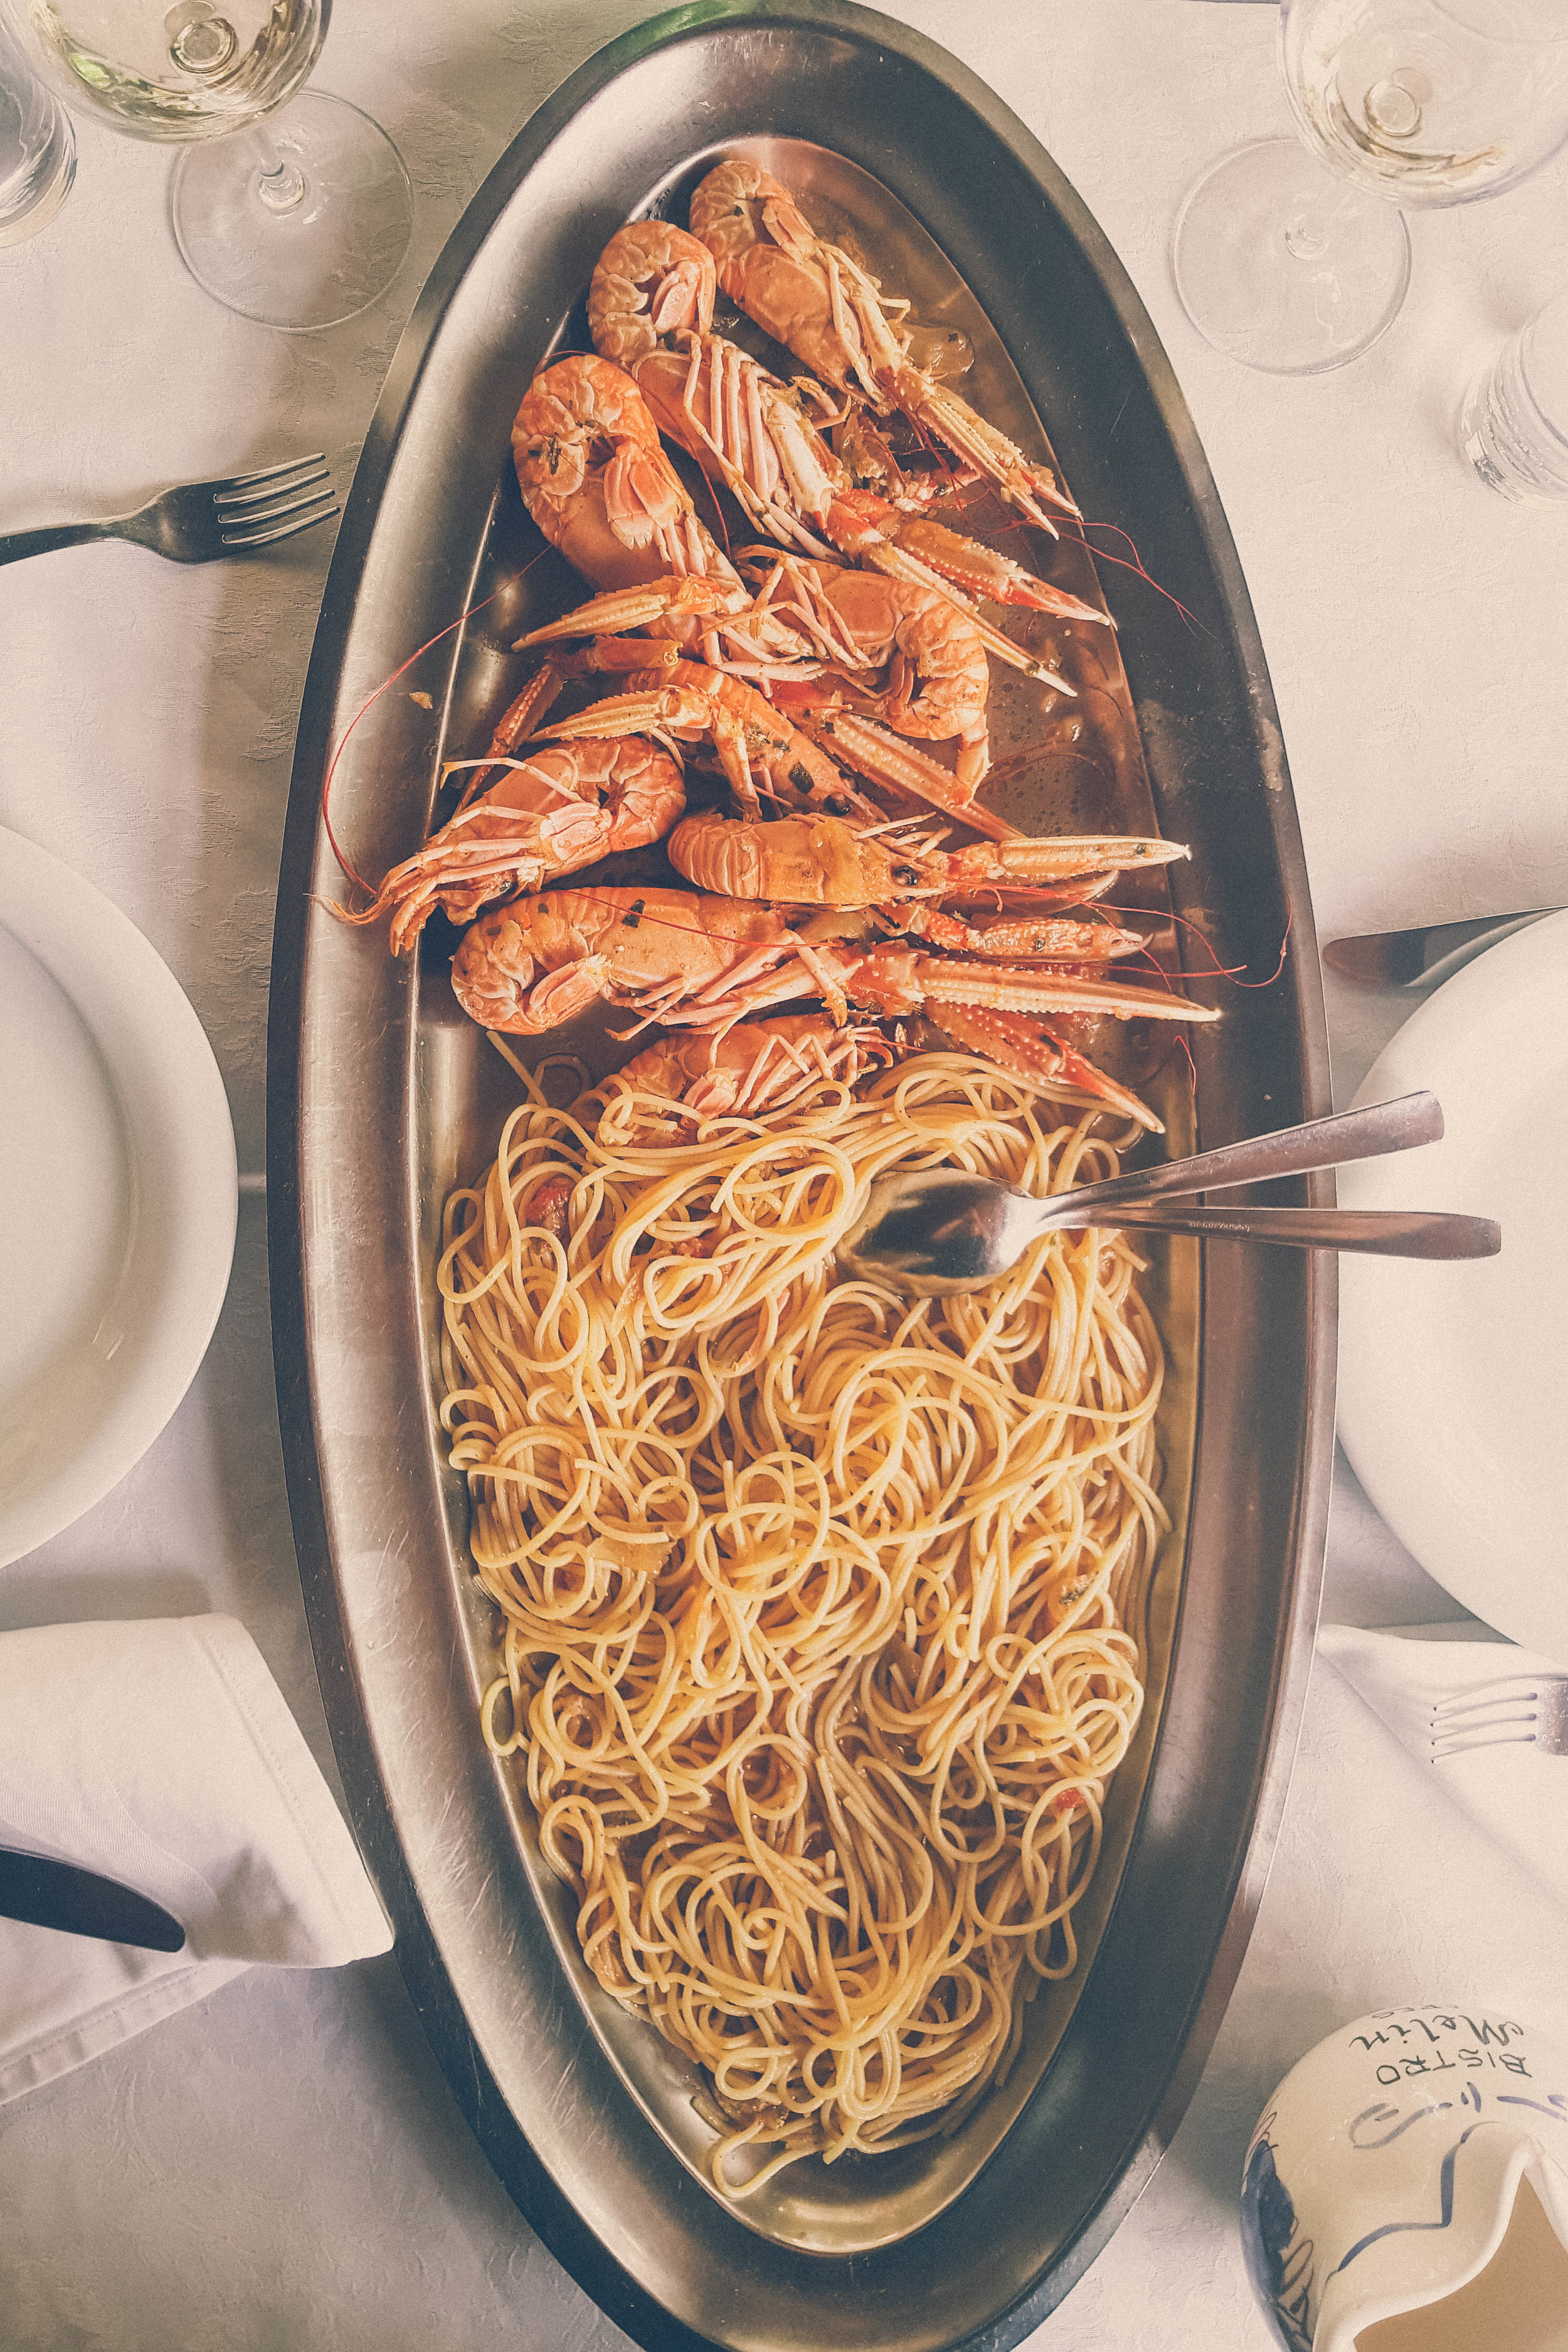 Scampi at Bistro Melin, Cres